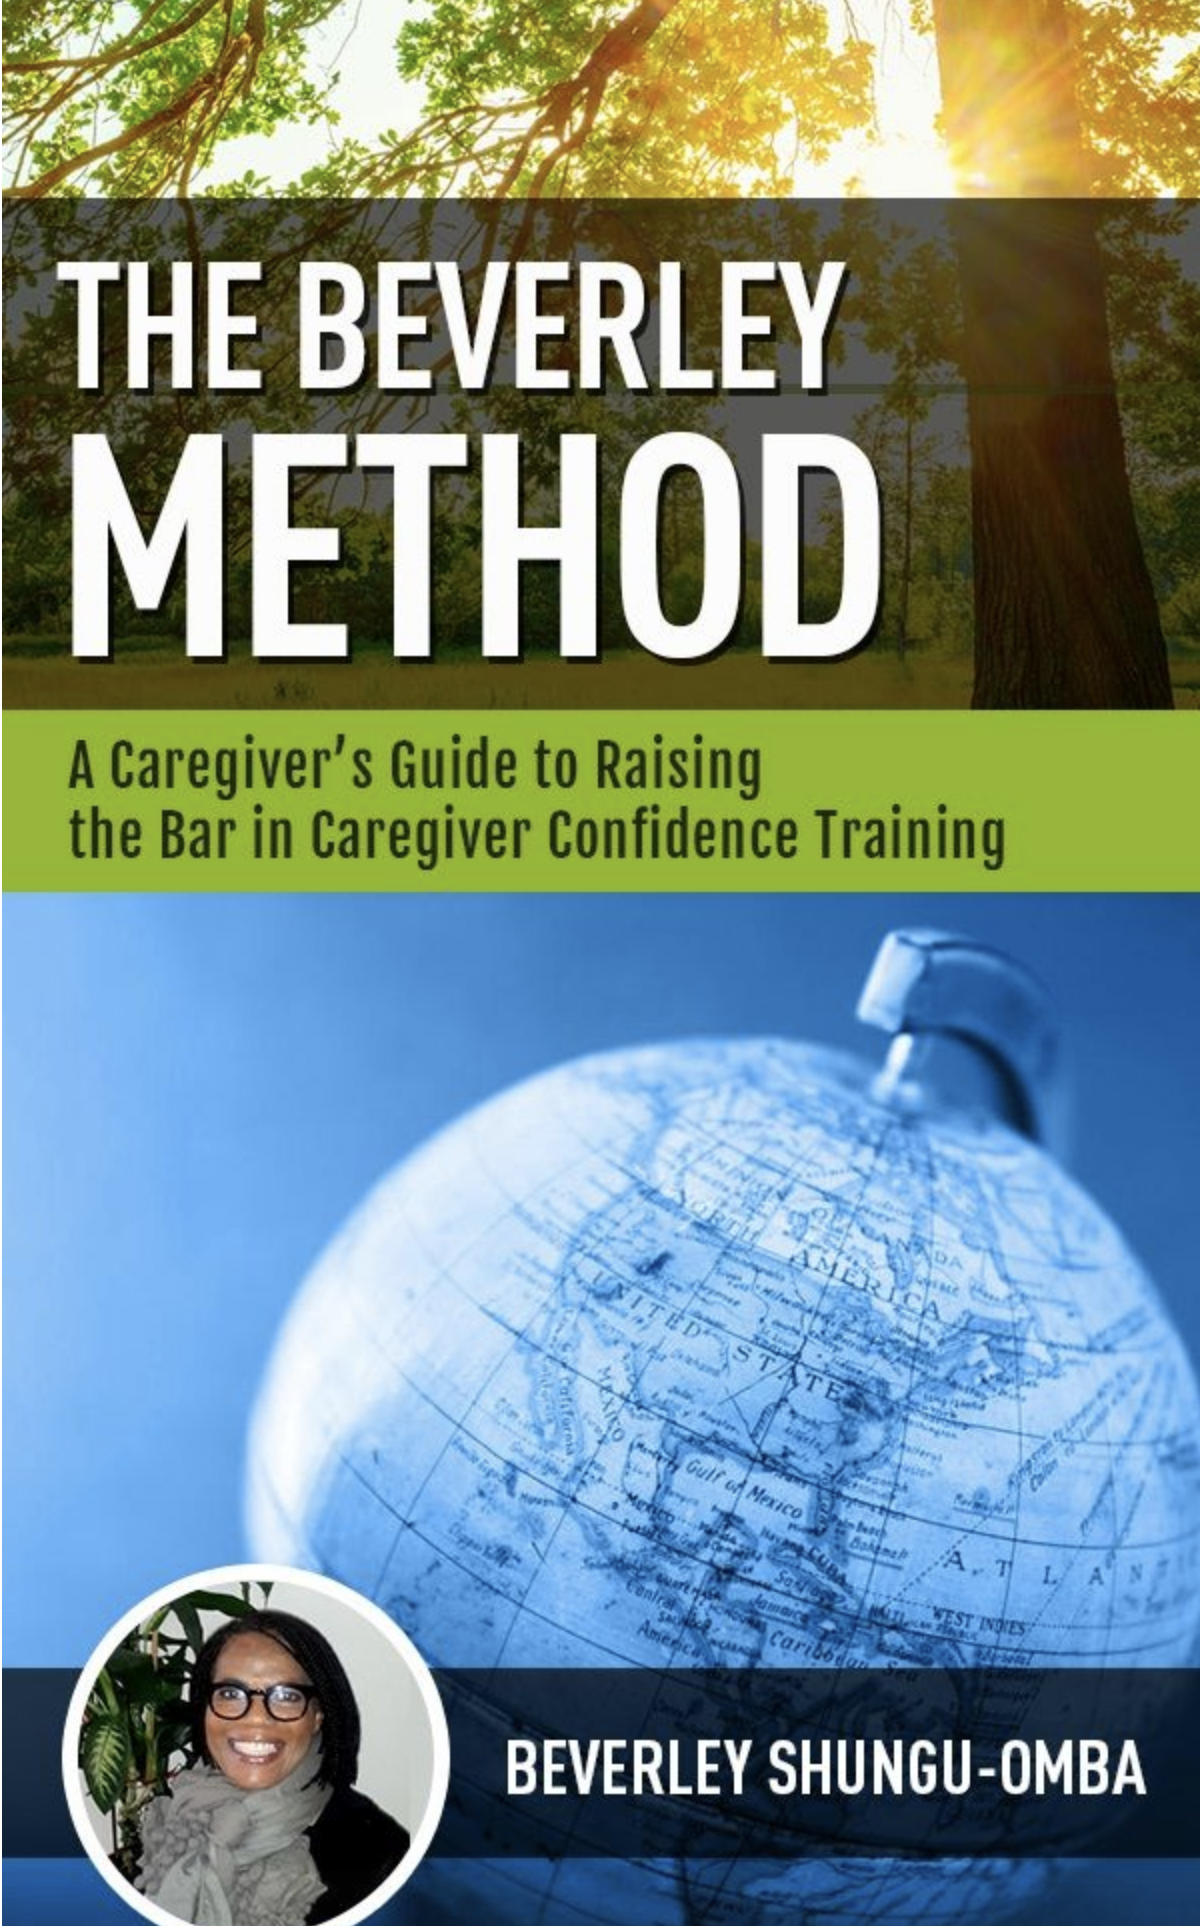 The Beverley Method, the Global Caregiver, E-Book 6 Steps